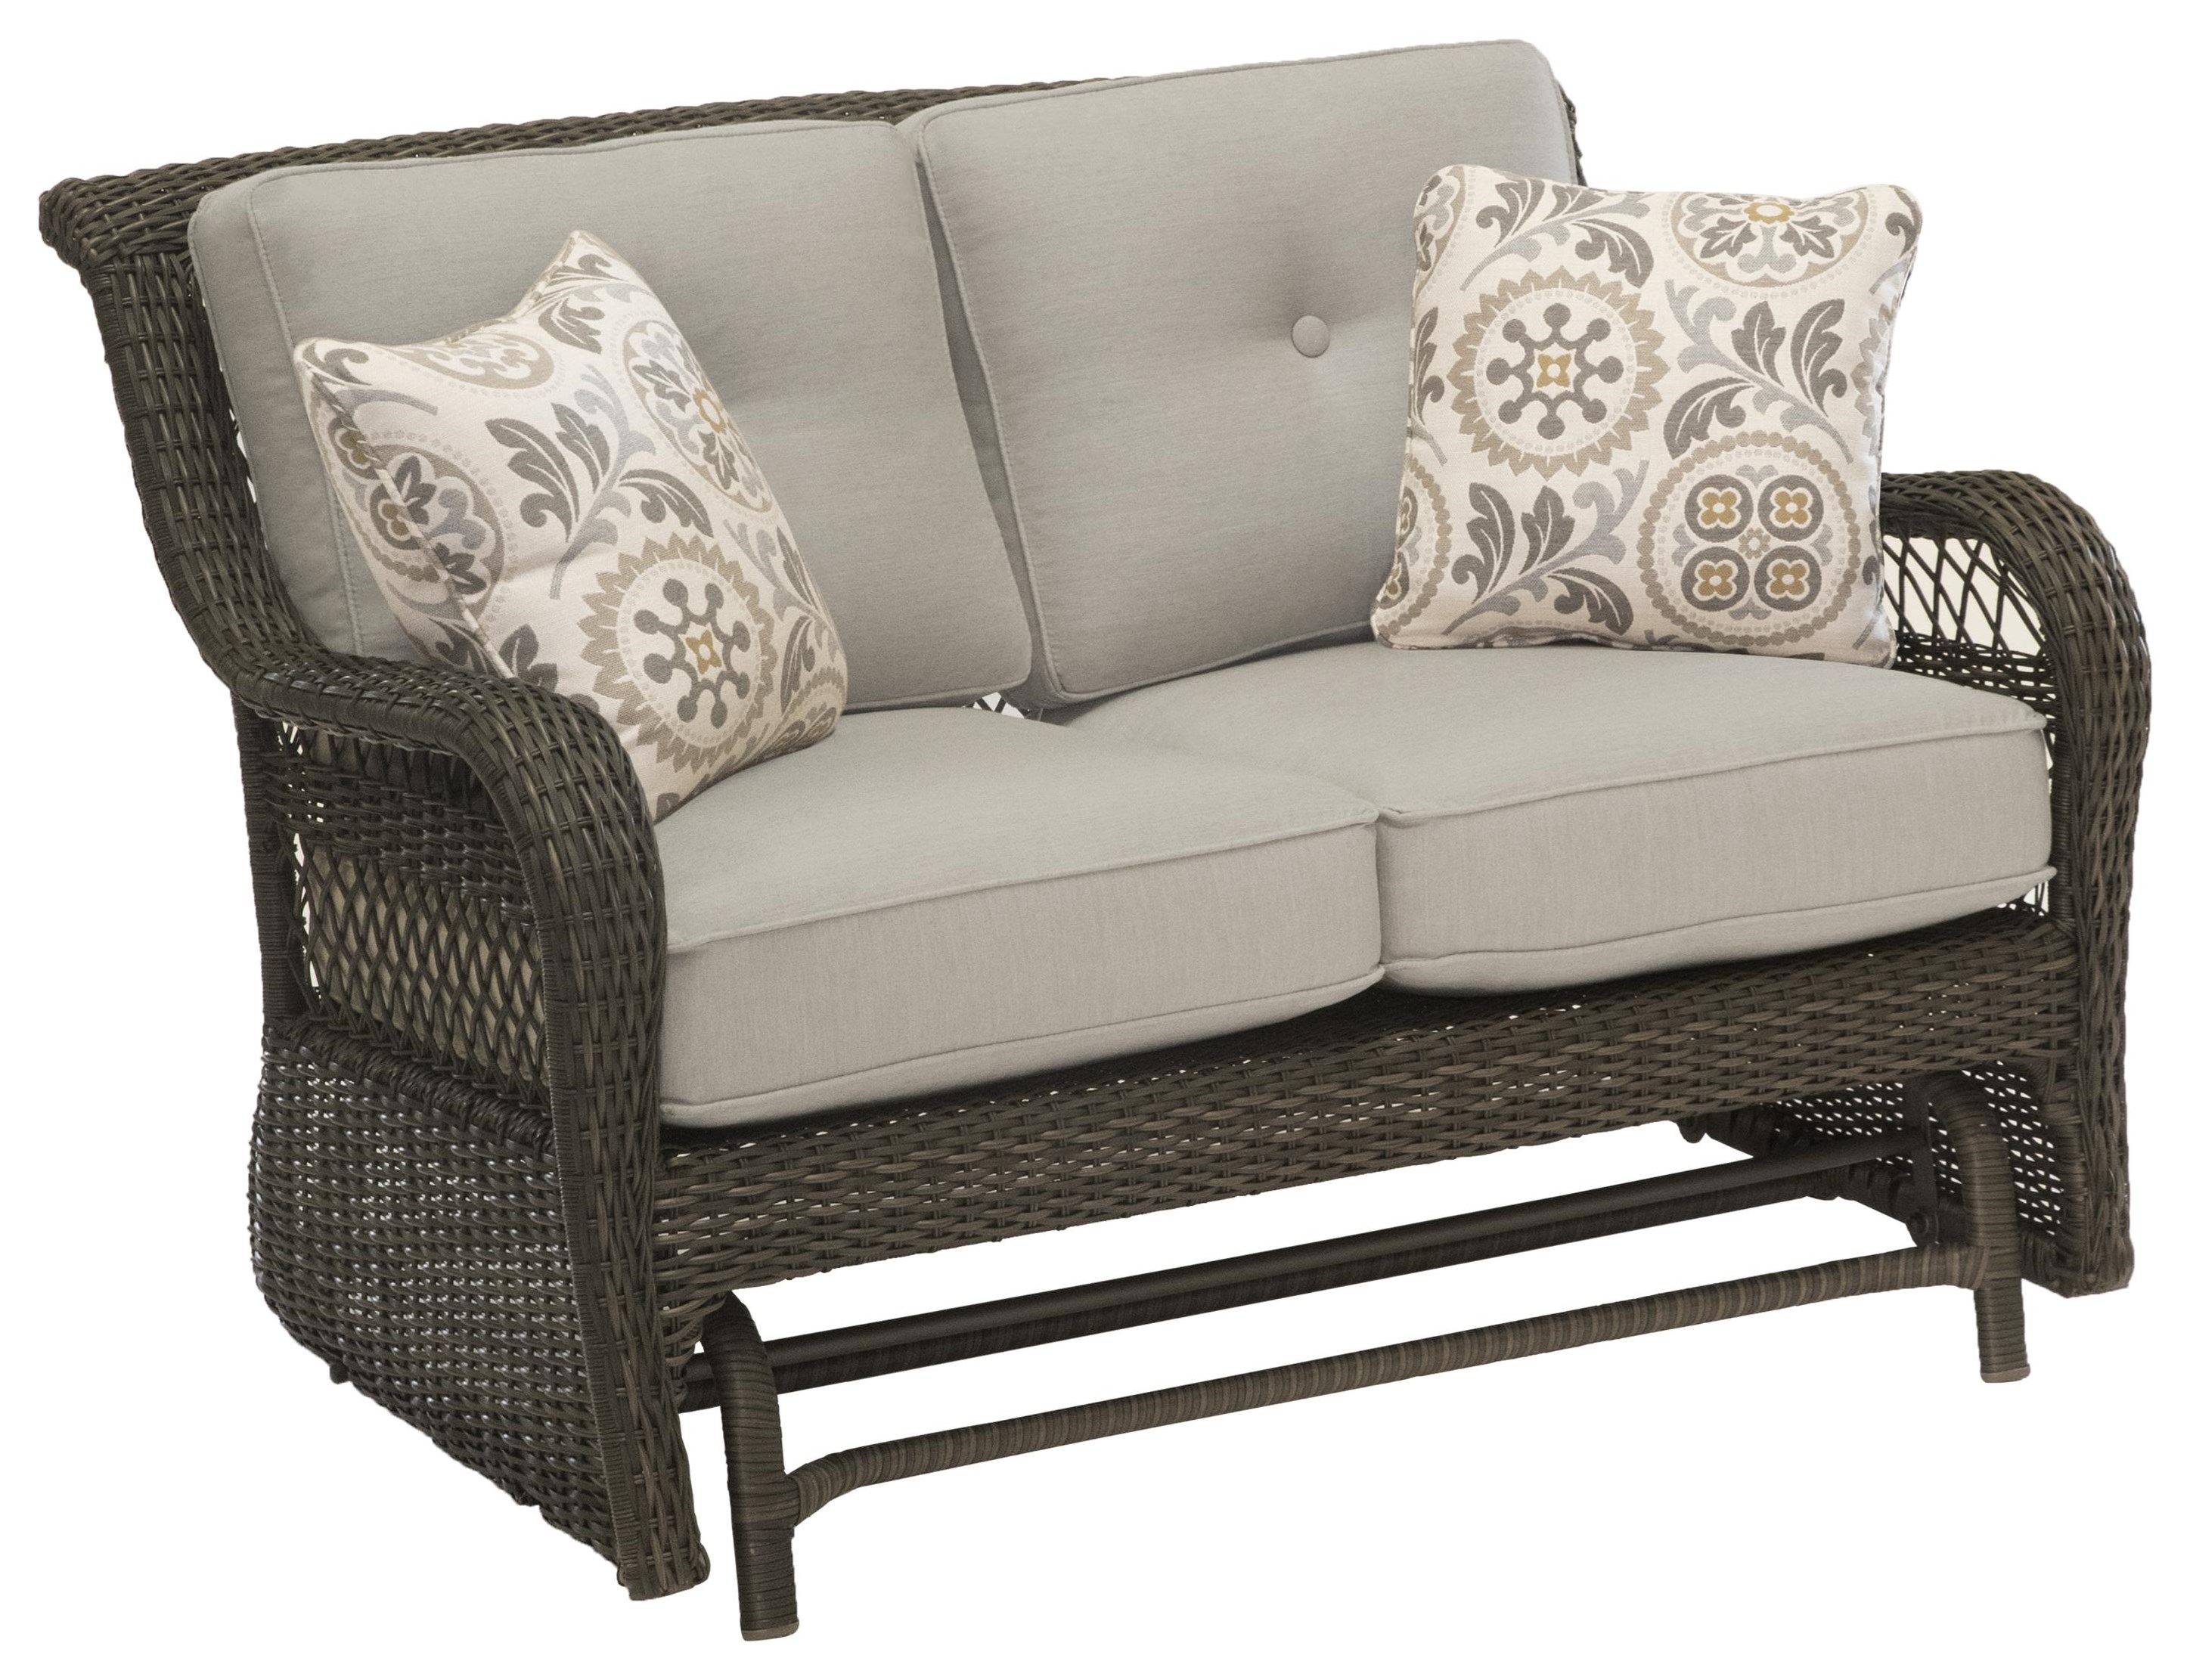 Riviera Loveseat Glider by Apricity Outdoor at Johnny Janosik